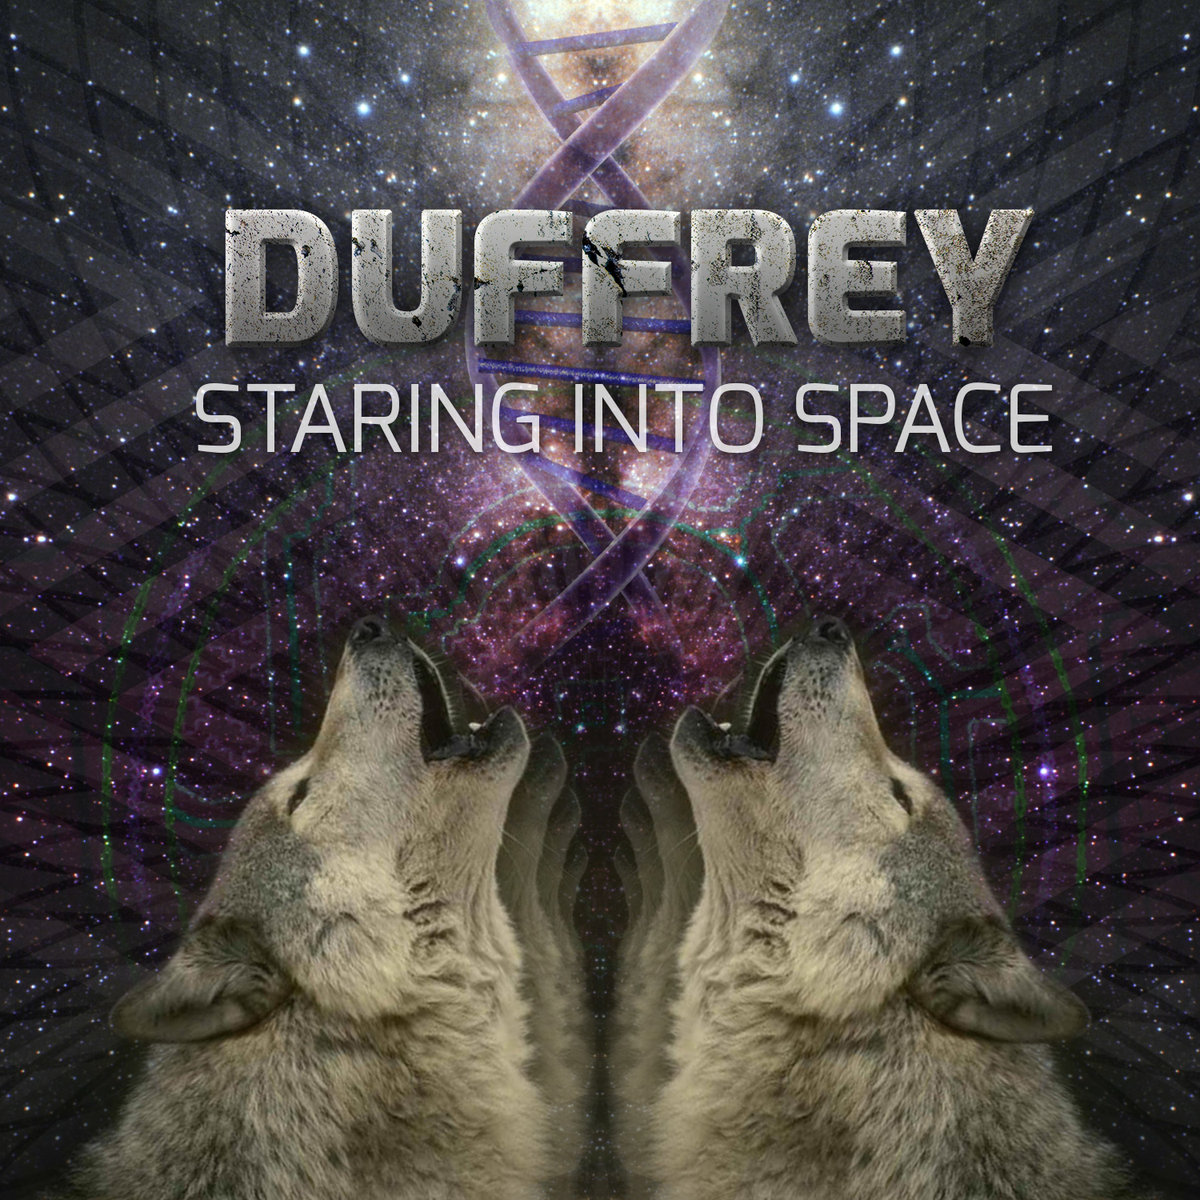 Duffrey - Third Eye Vision @ 'Staring Into Space' album (bass, breaks)